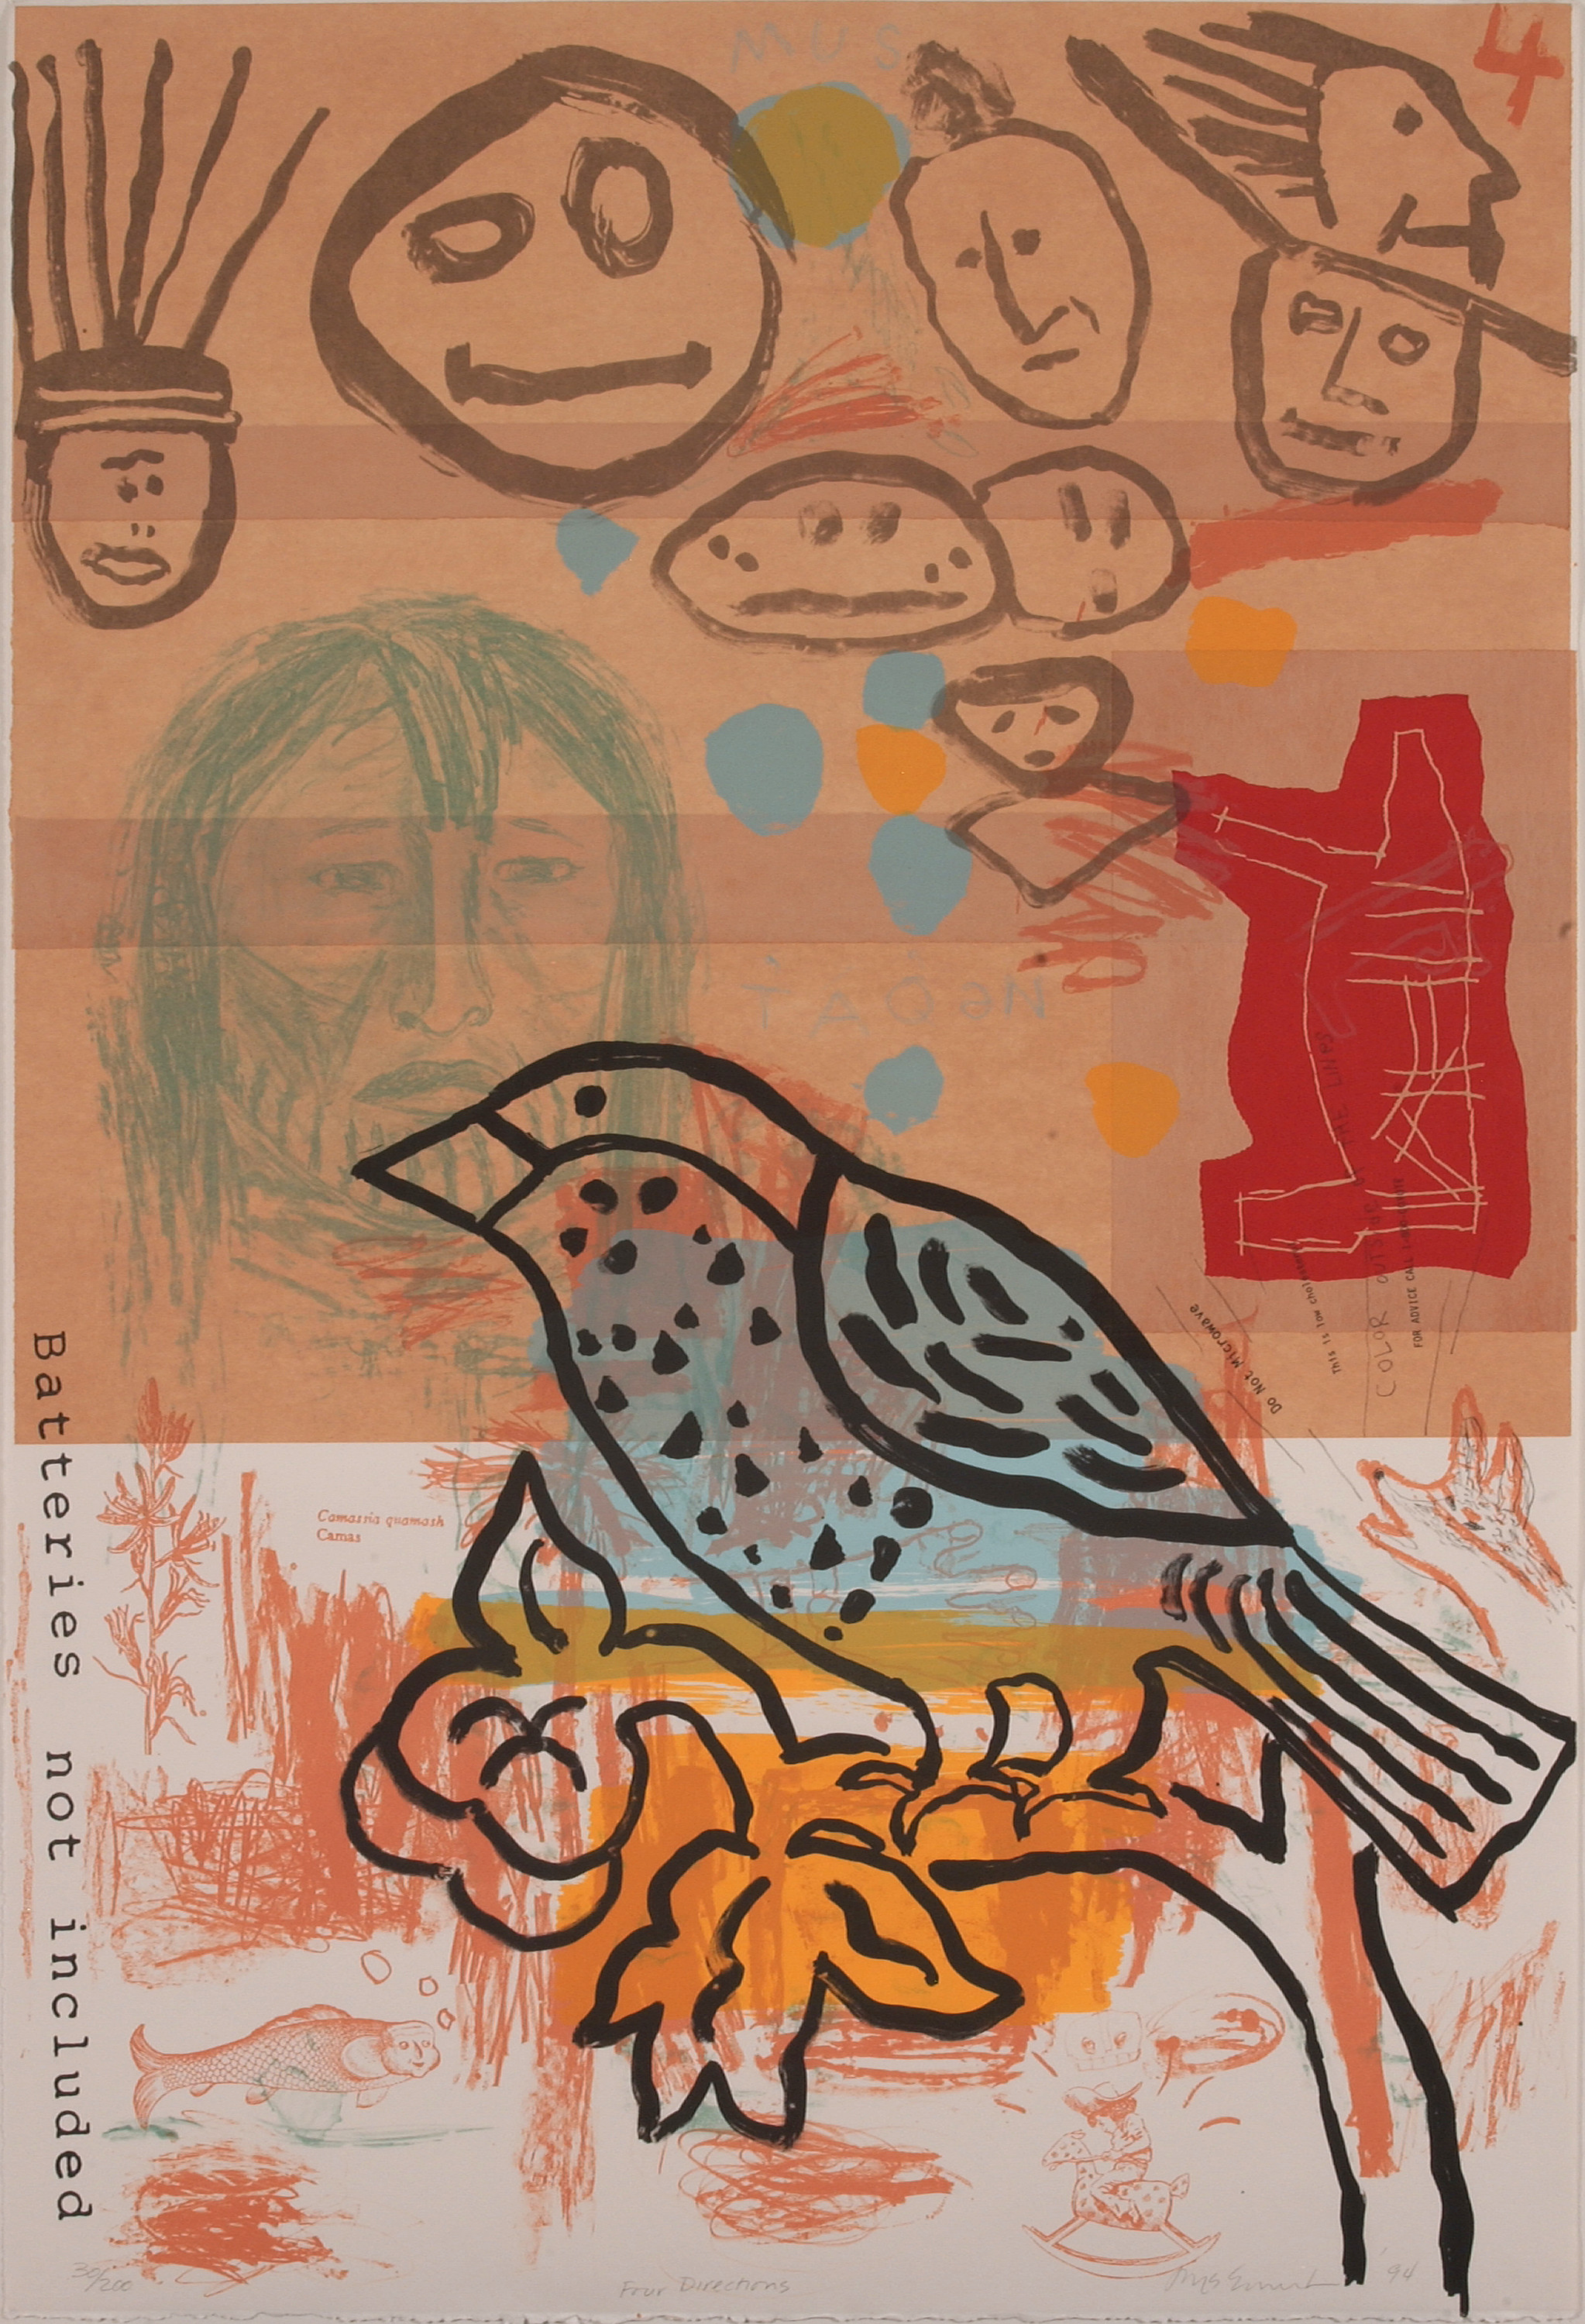 """A black line painting of a bird with several gray stick figure faces, basic animal drawings, and a small, detailed lake in the background. """"Batteries Not Included"""" is typewritten down the bottom left side. The colors are terracotta neutrals—tan, red, orange, and light blue."""